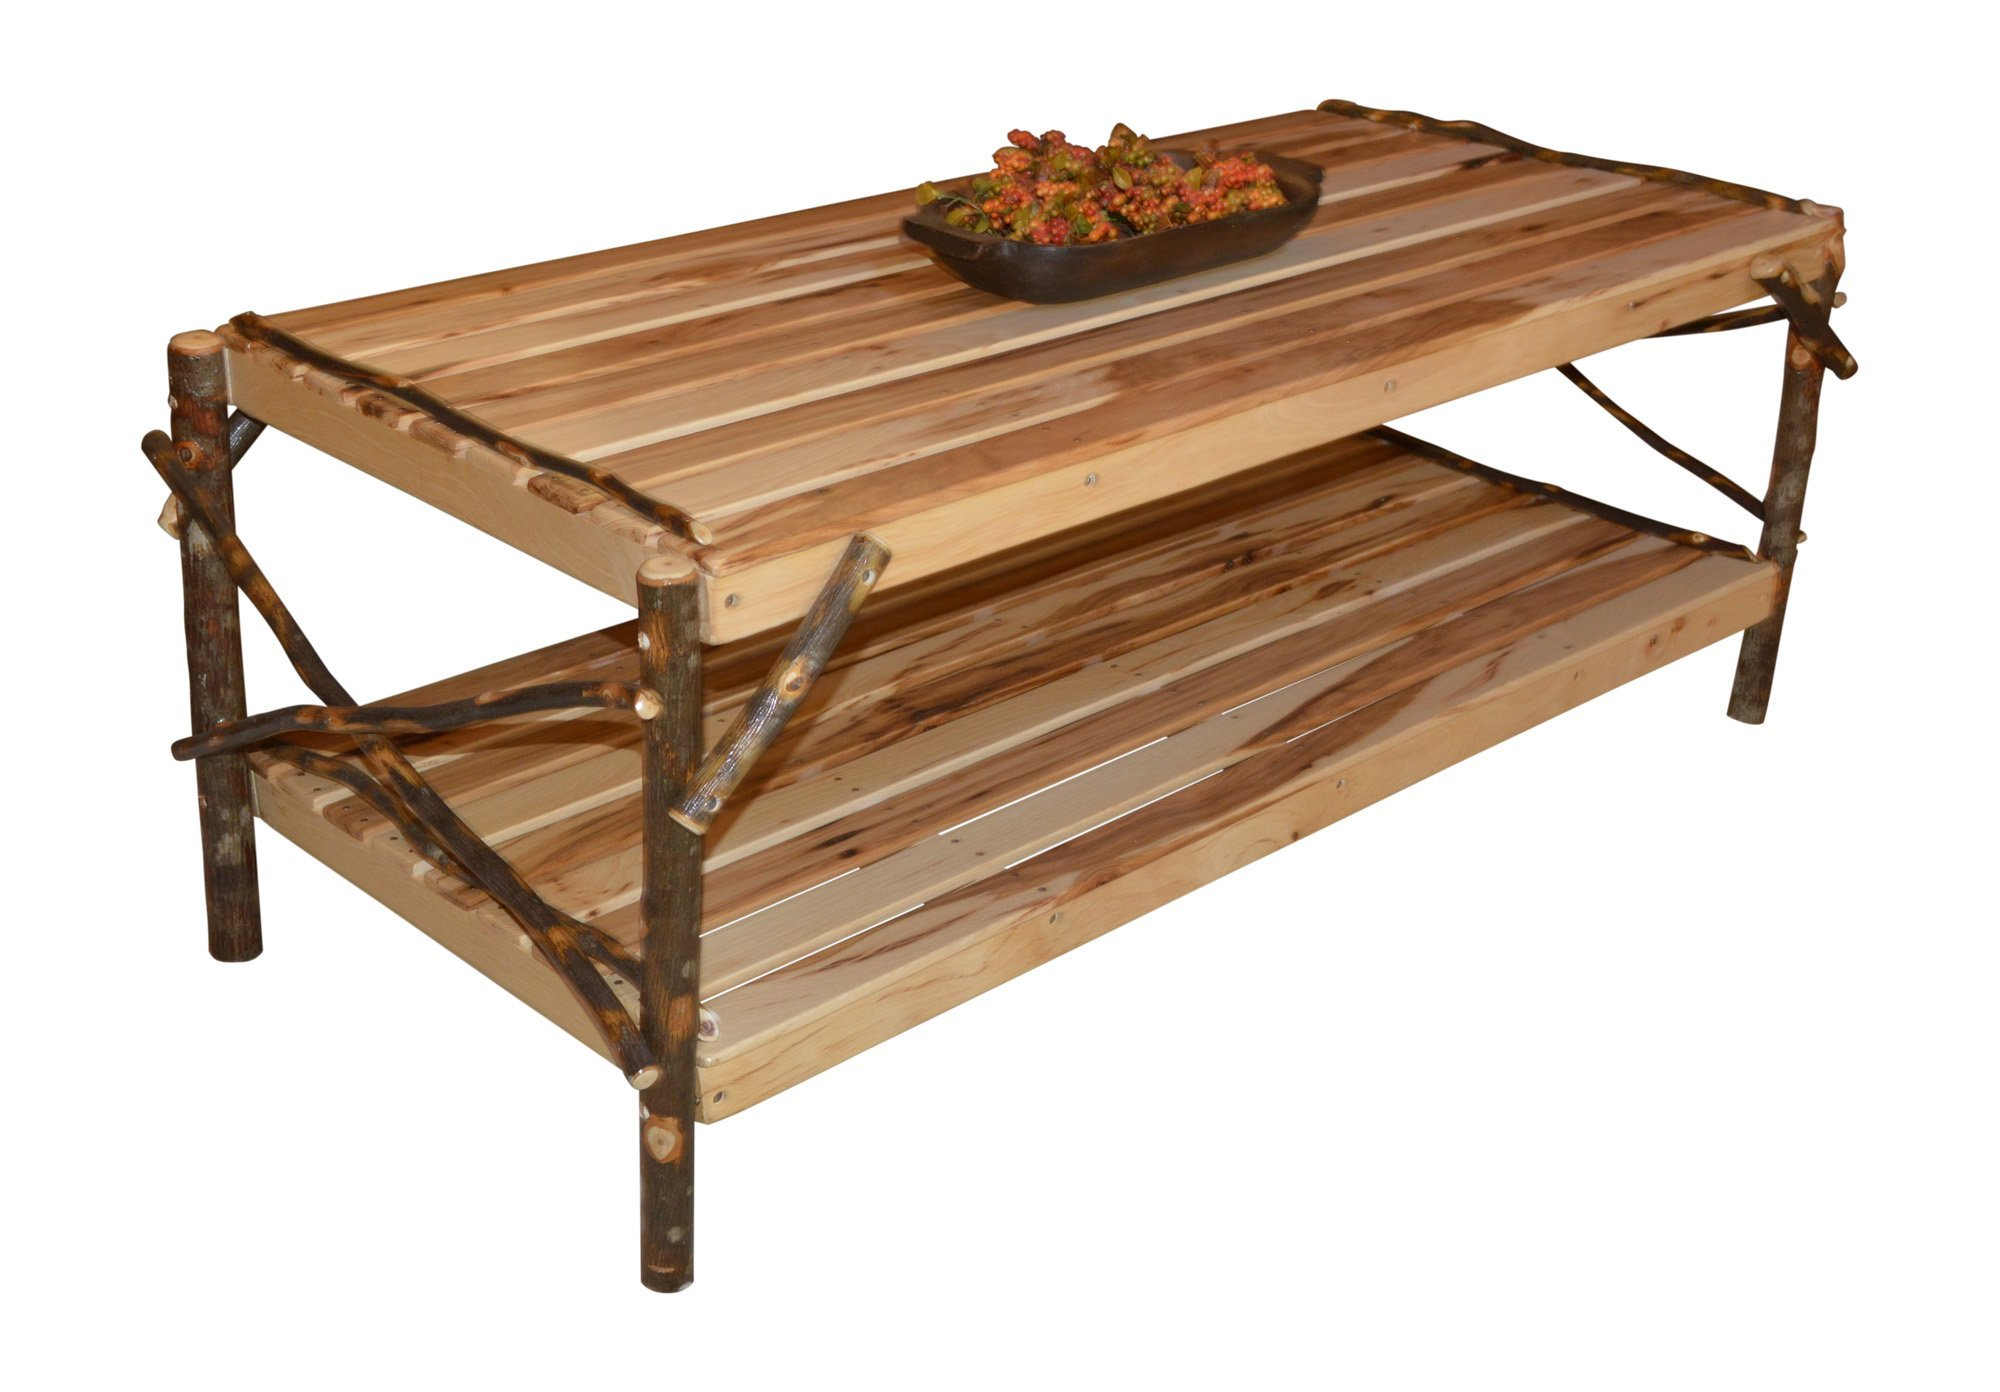 Rustic Hickory Wood Coffee Table With Shelf From Dutchcrafters Amish